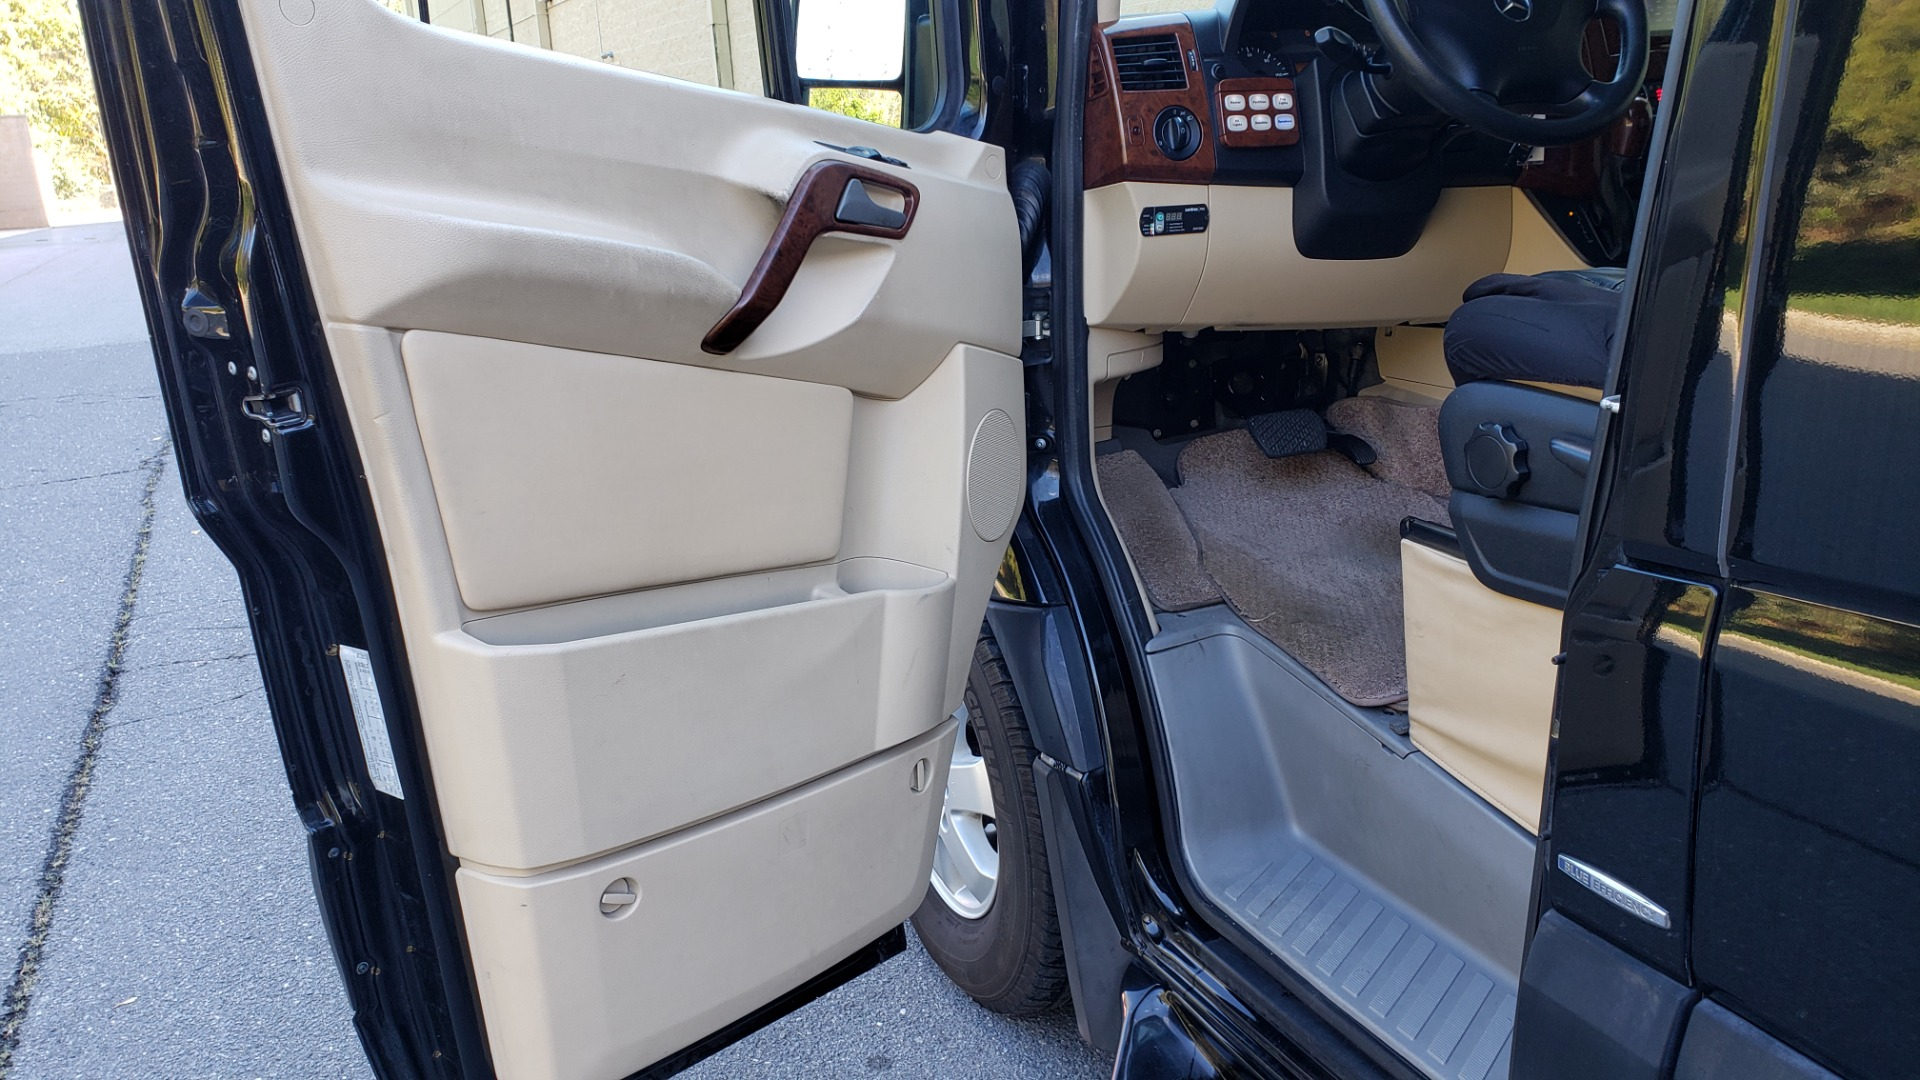 Used 2012 Mercedes-Benz SPRINTER CARGO VAN EXT / OFFICE ON WHEELS / FLT SCREEN TV / LOUNGE for sale Sold at Formula Imports in Charlotte NC 28227 18